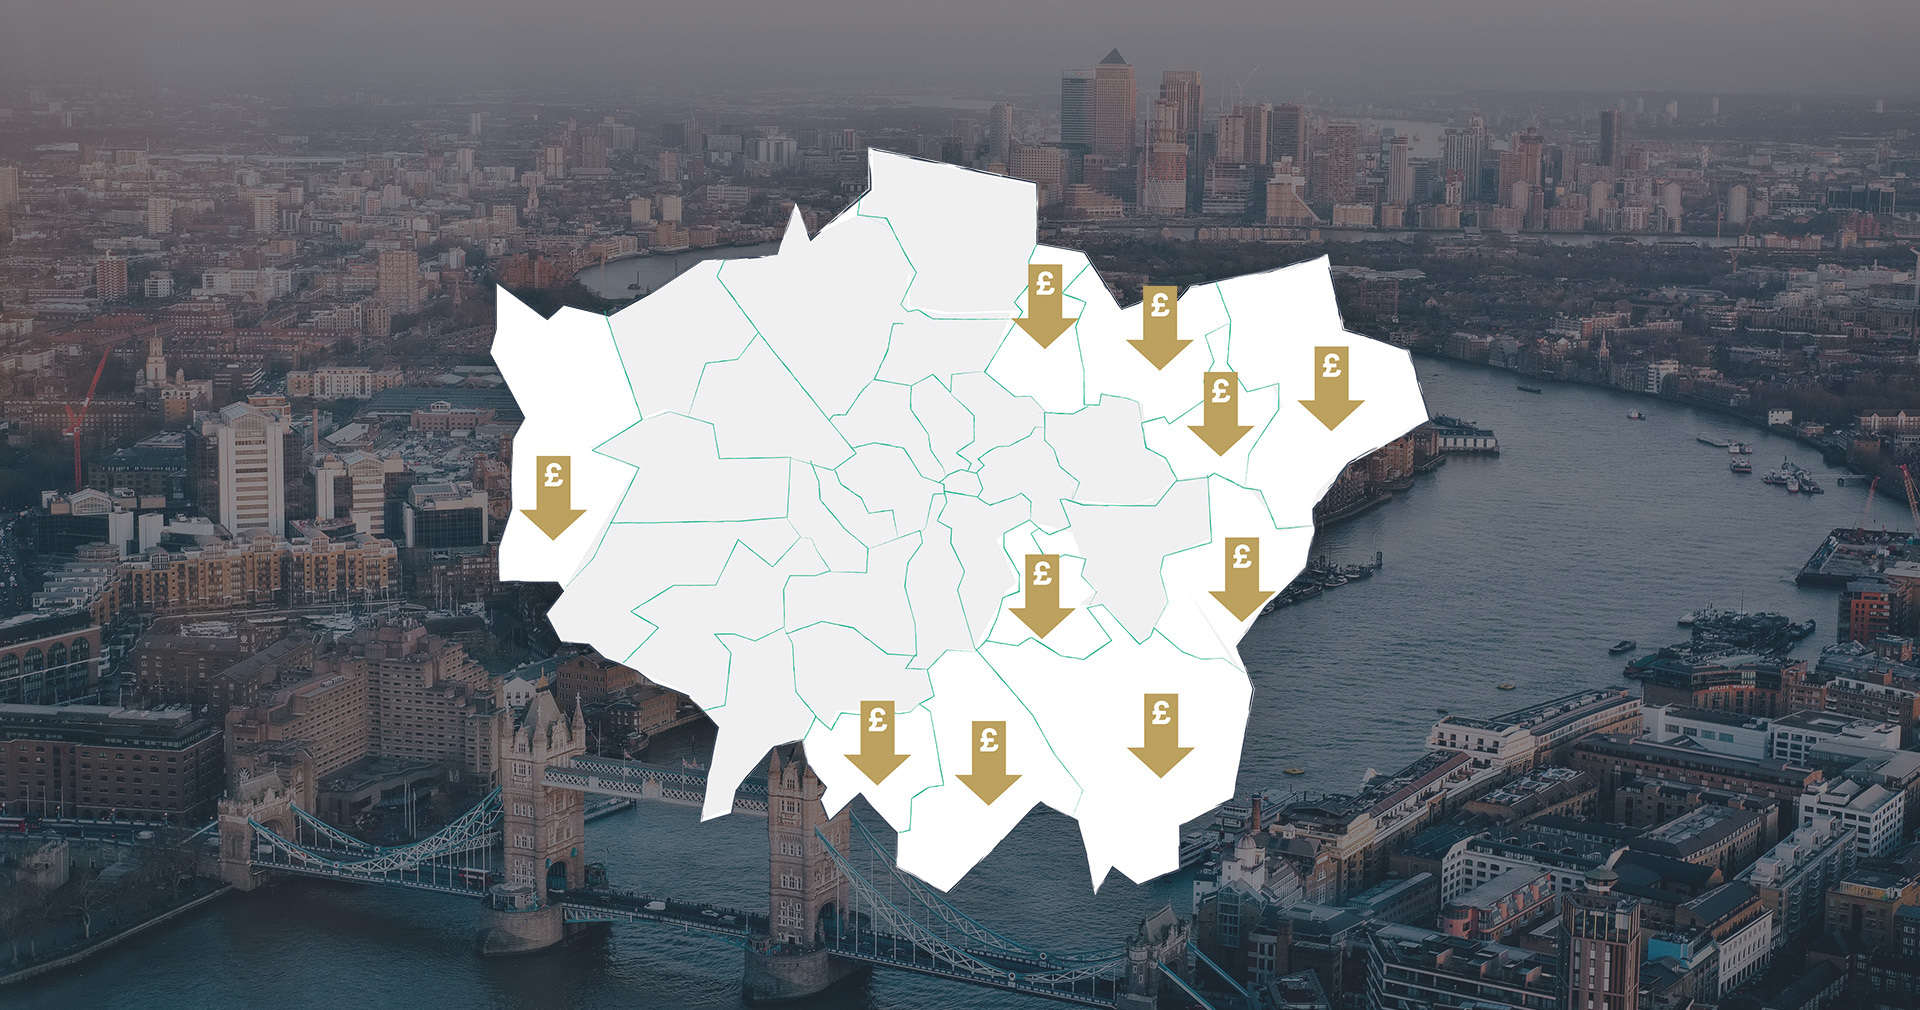 Map showing the 10 cheapest places to live in London